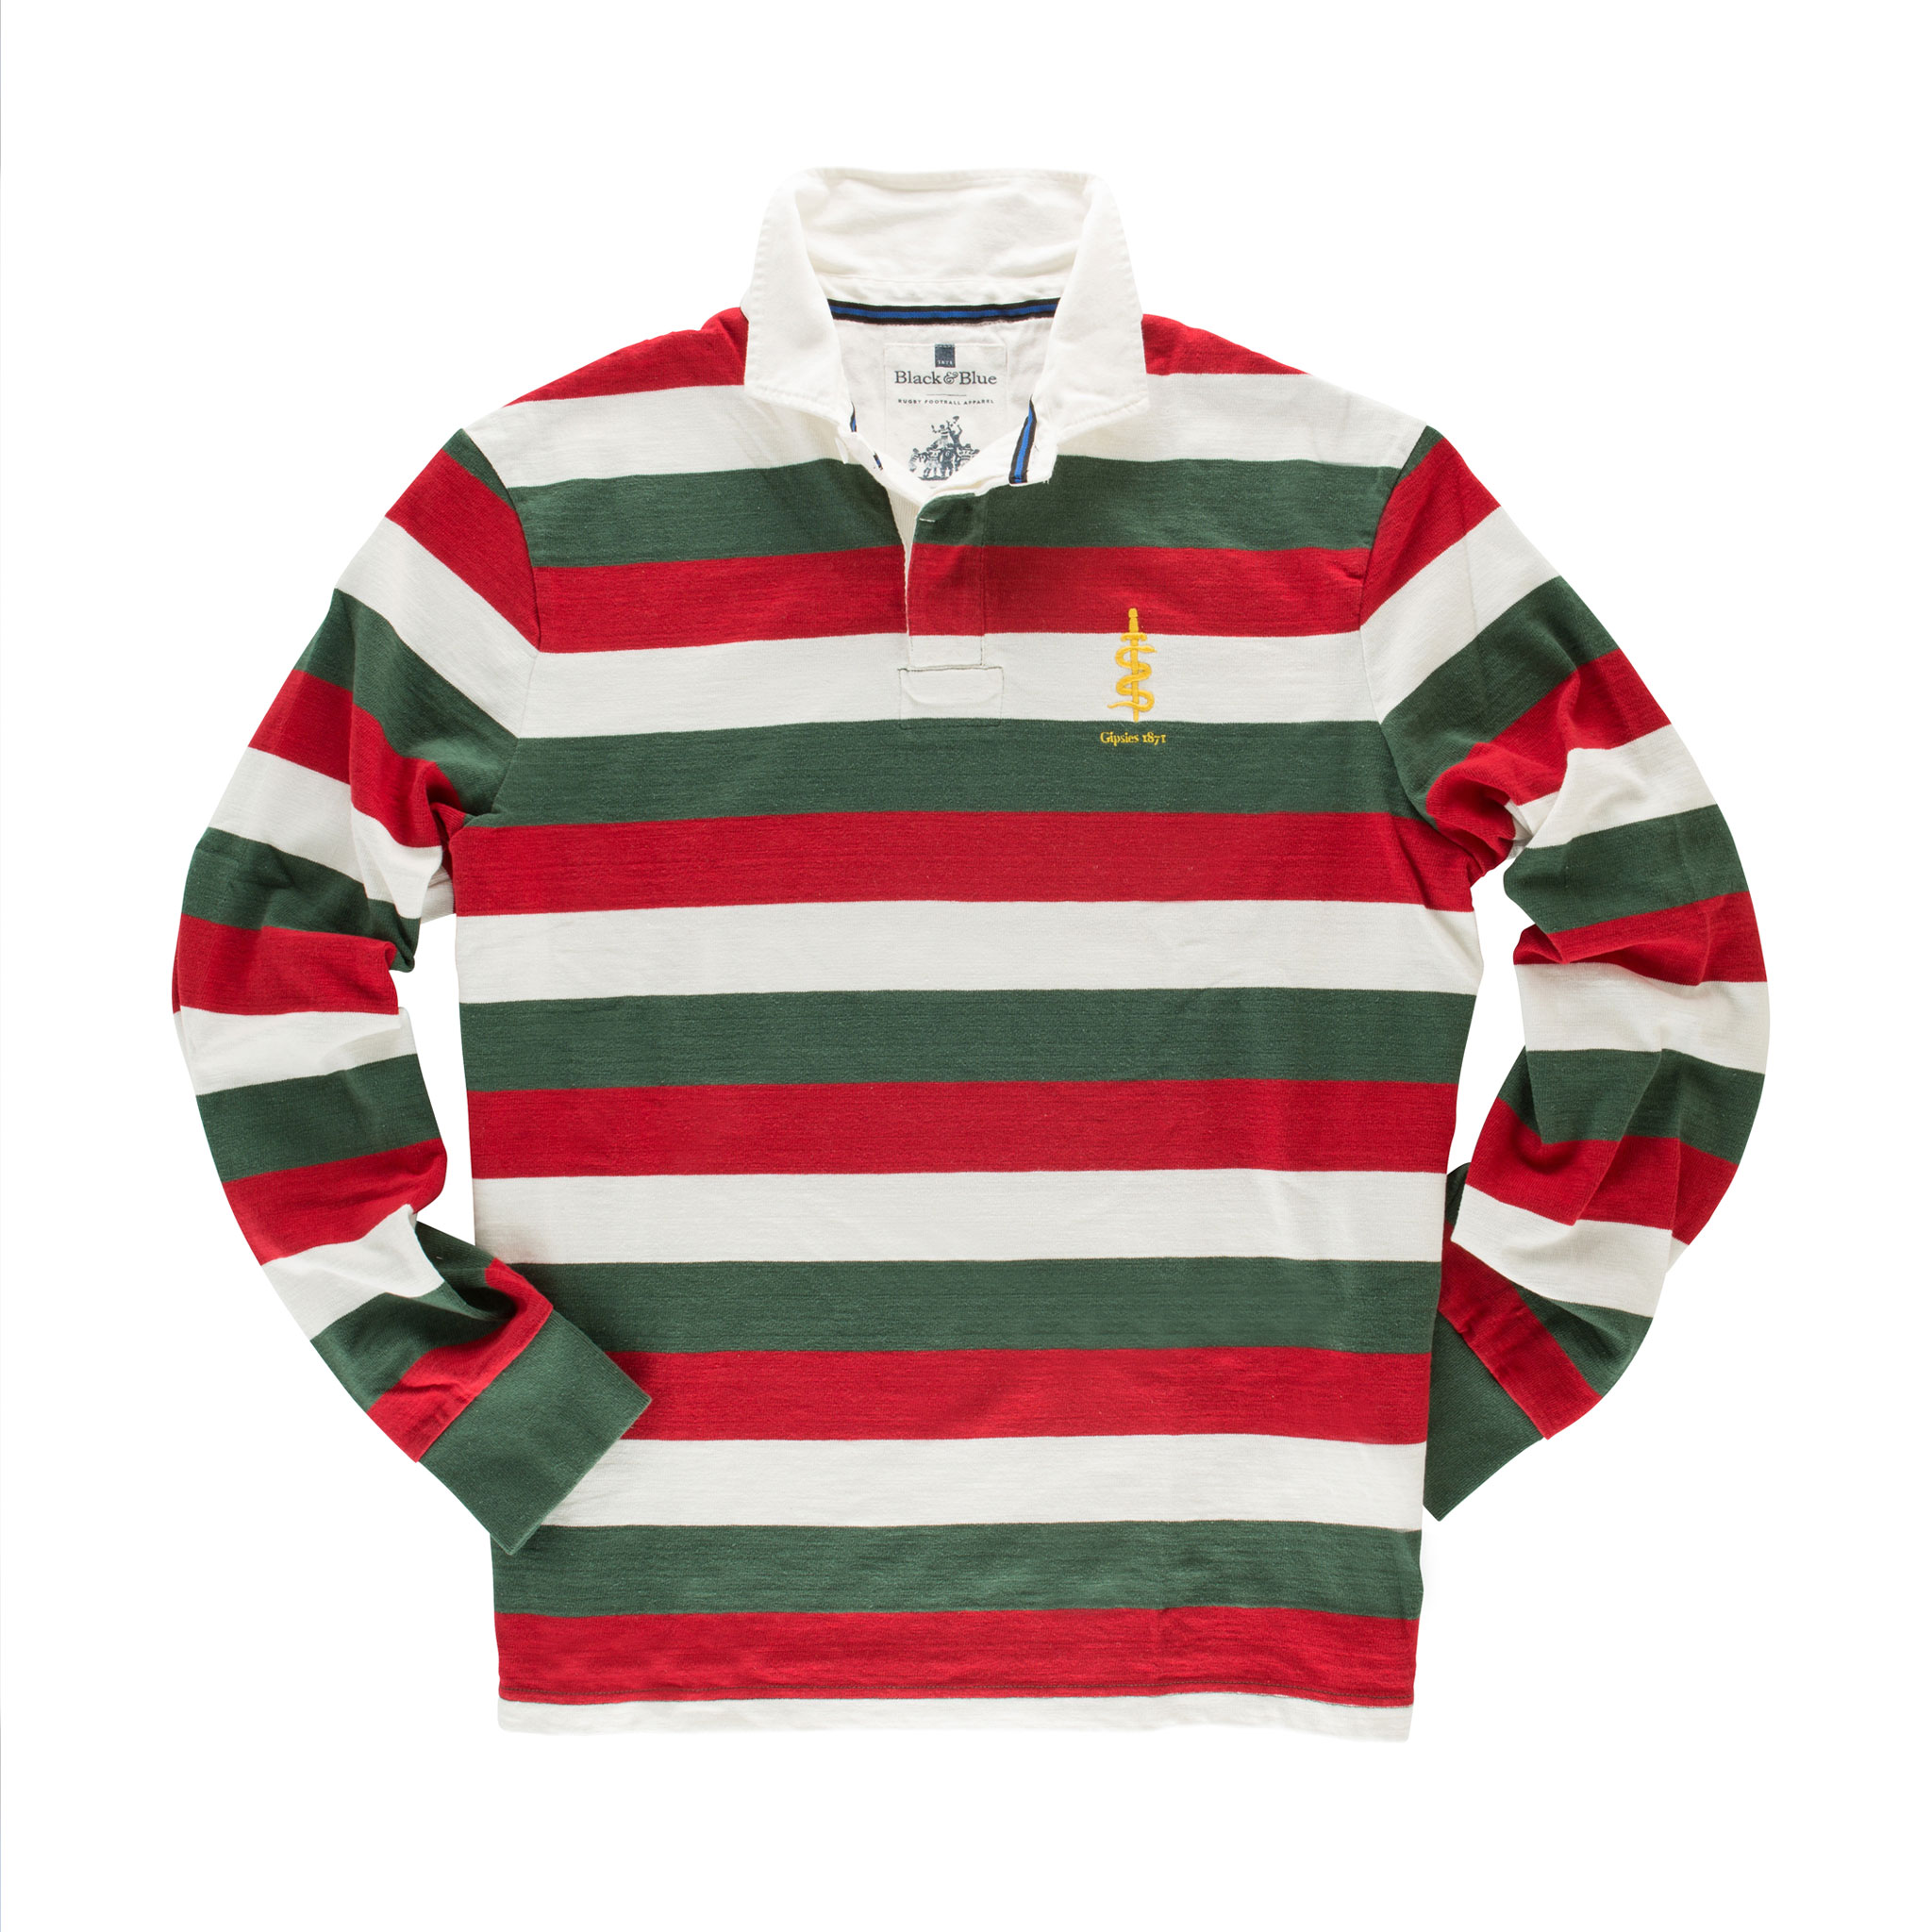 Gipsies 1871 Rugby Shirt - front